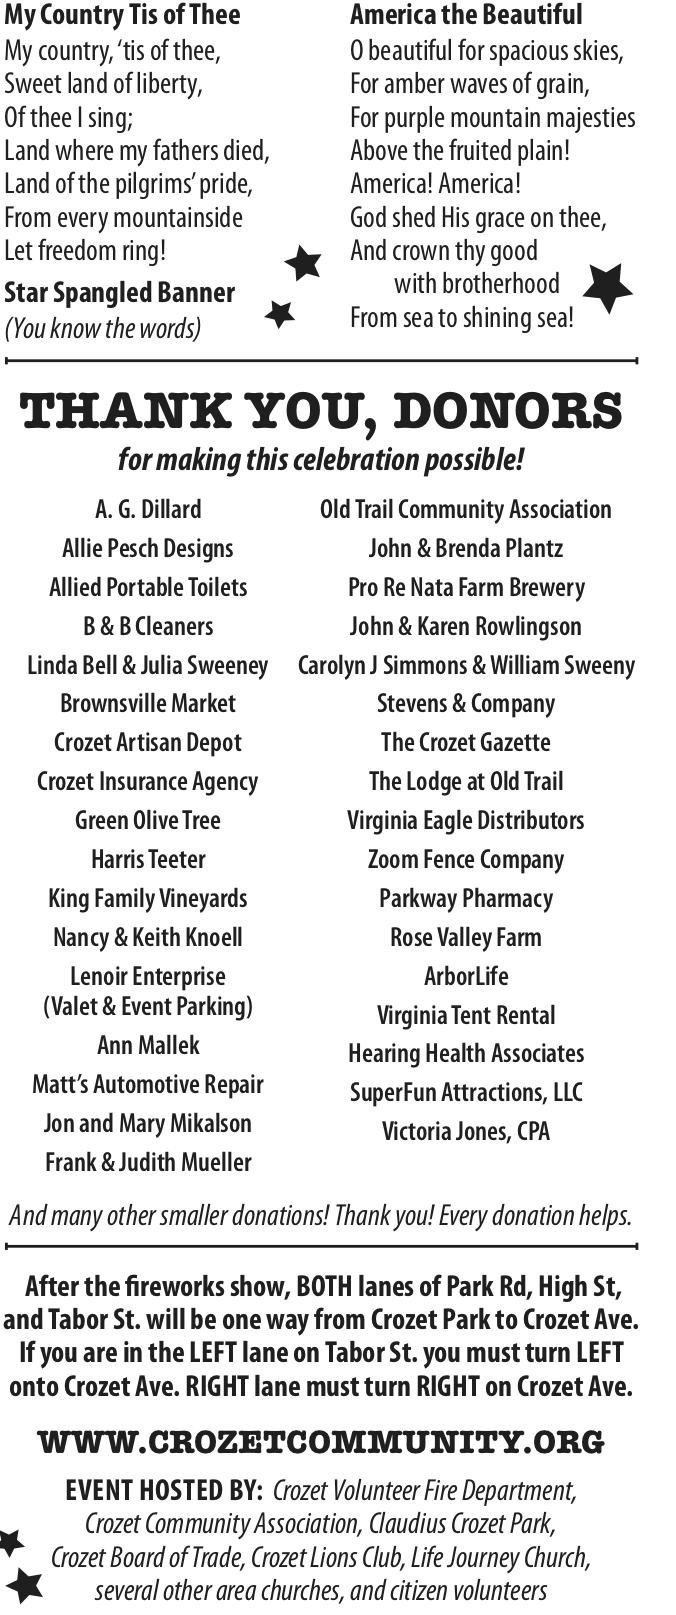 Donors to the Crozet Independence Day Fireworks Celebration at Crozet Park June 29, 2019